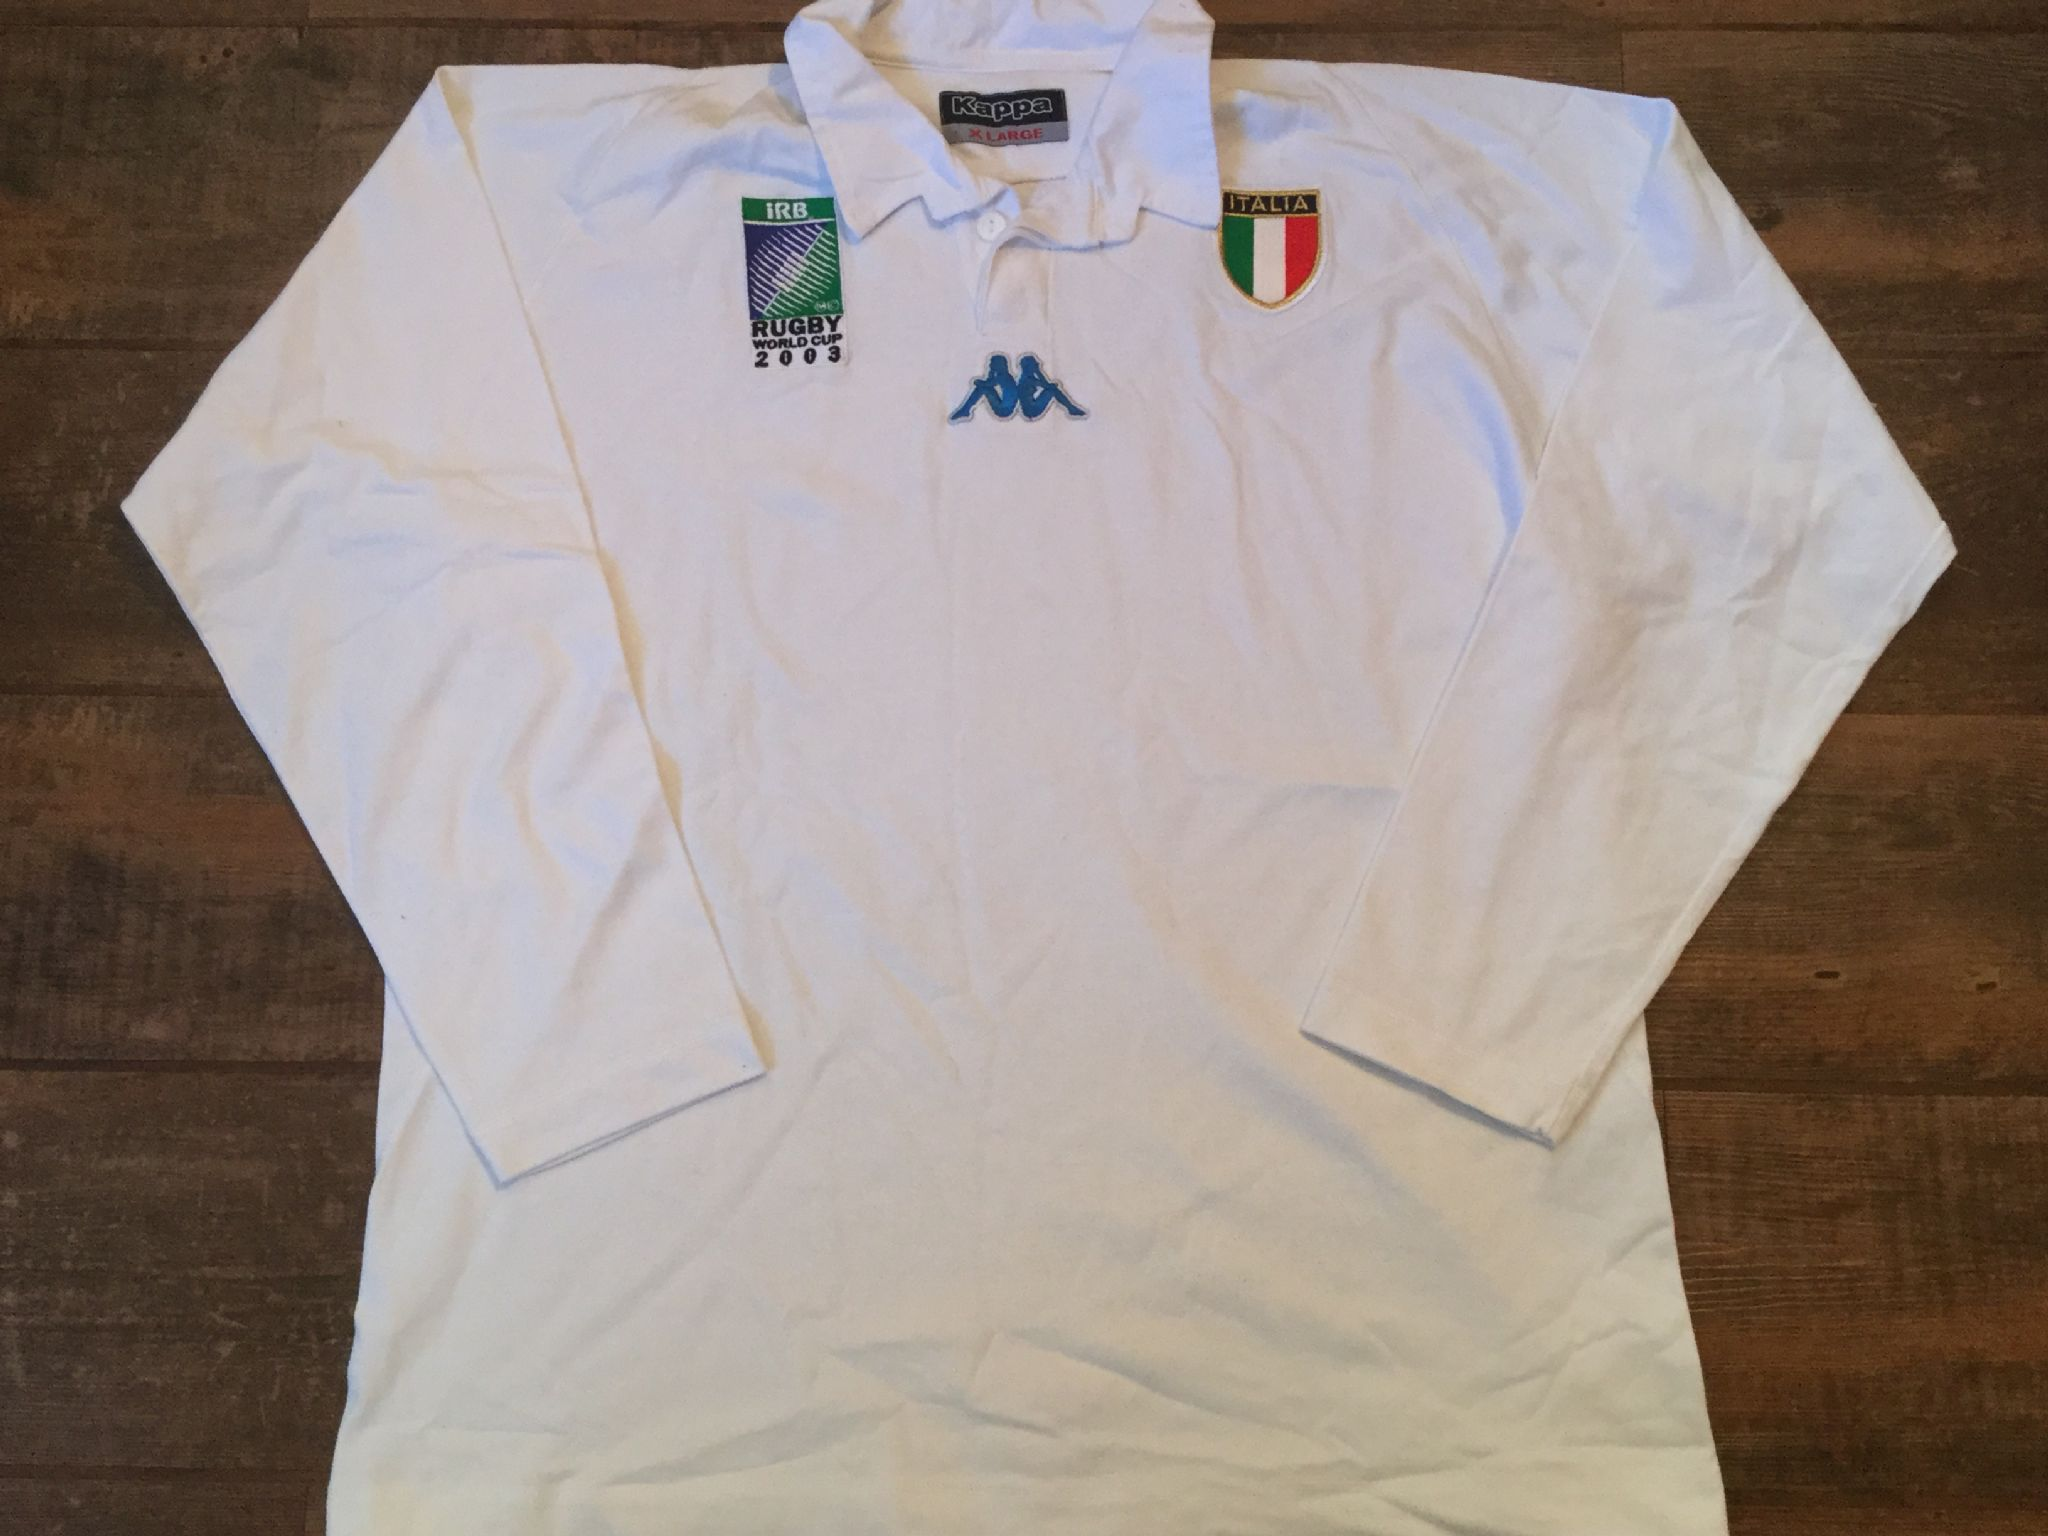 2003 Italy World Cup L s Rugby Away Shirt Adults XL b9b2aaf8b